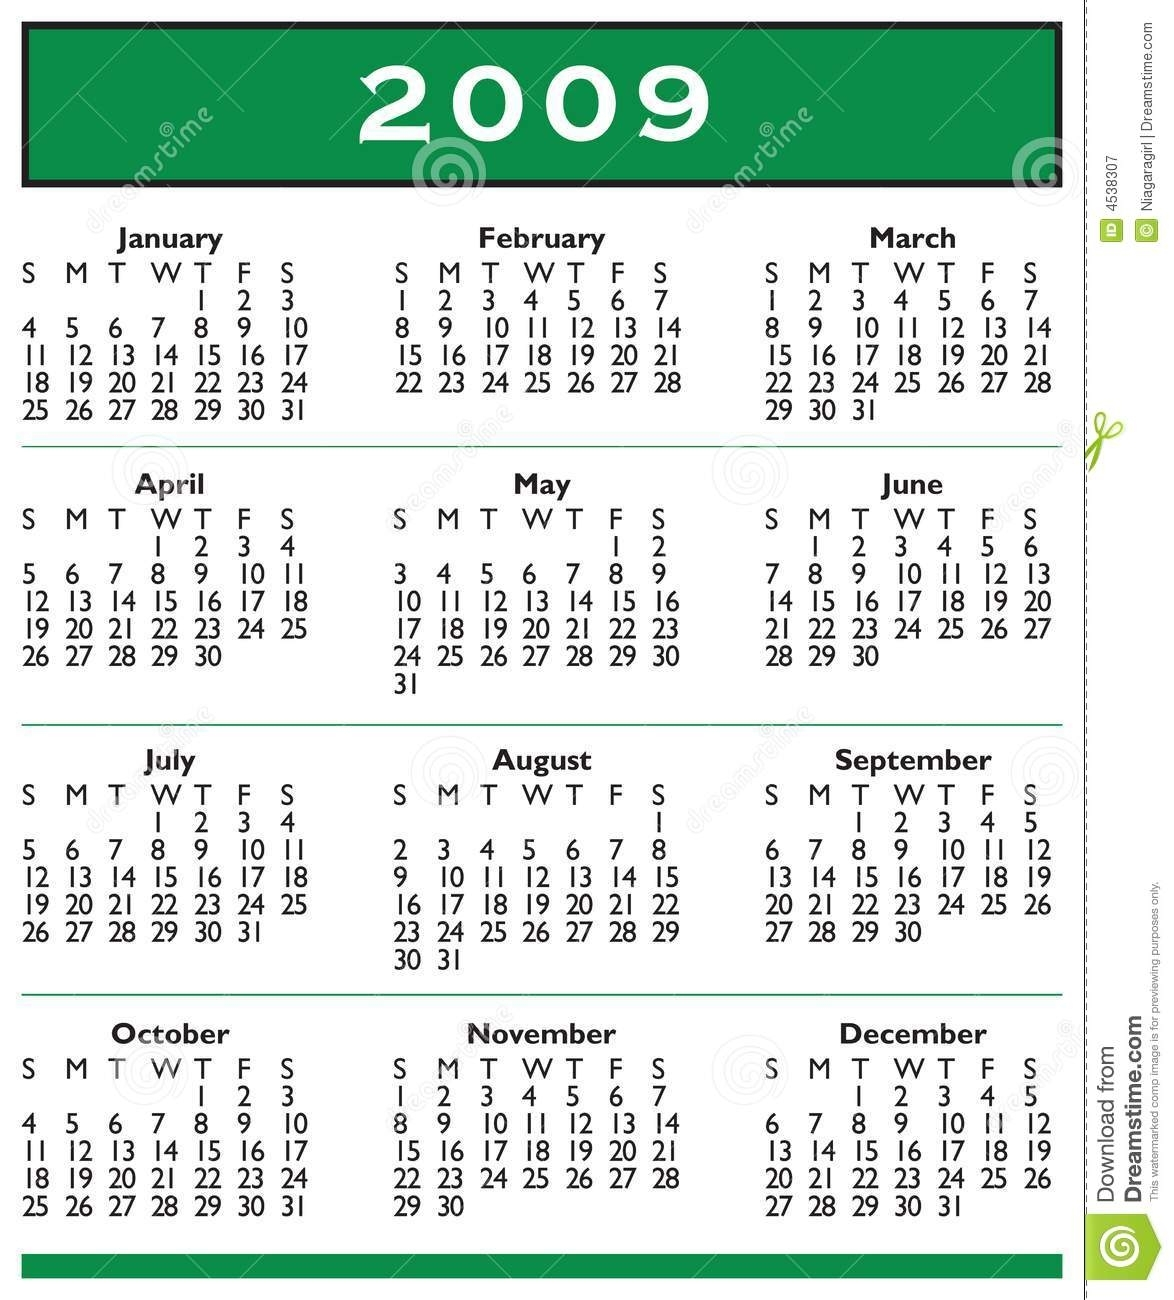 2009 Calendar Full Year Stock Vector. Illustration Of Bars